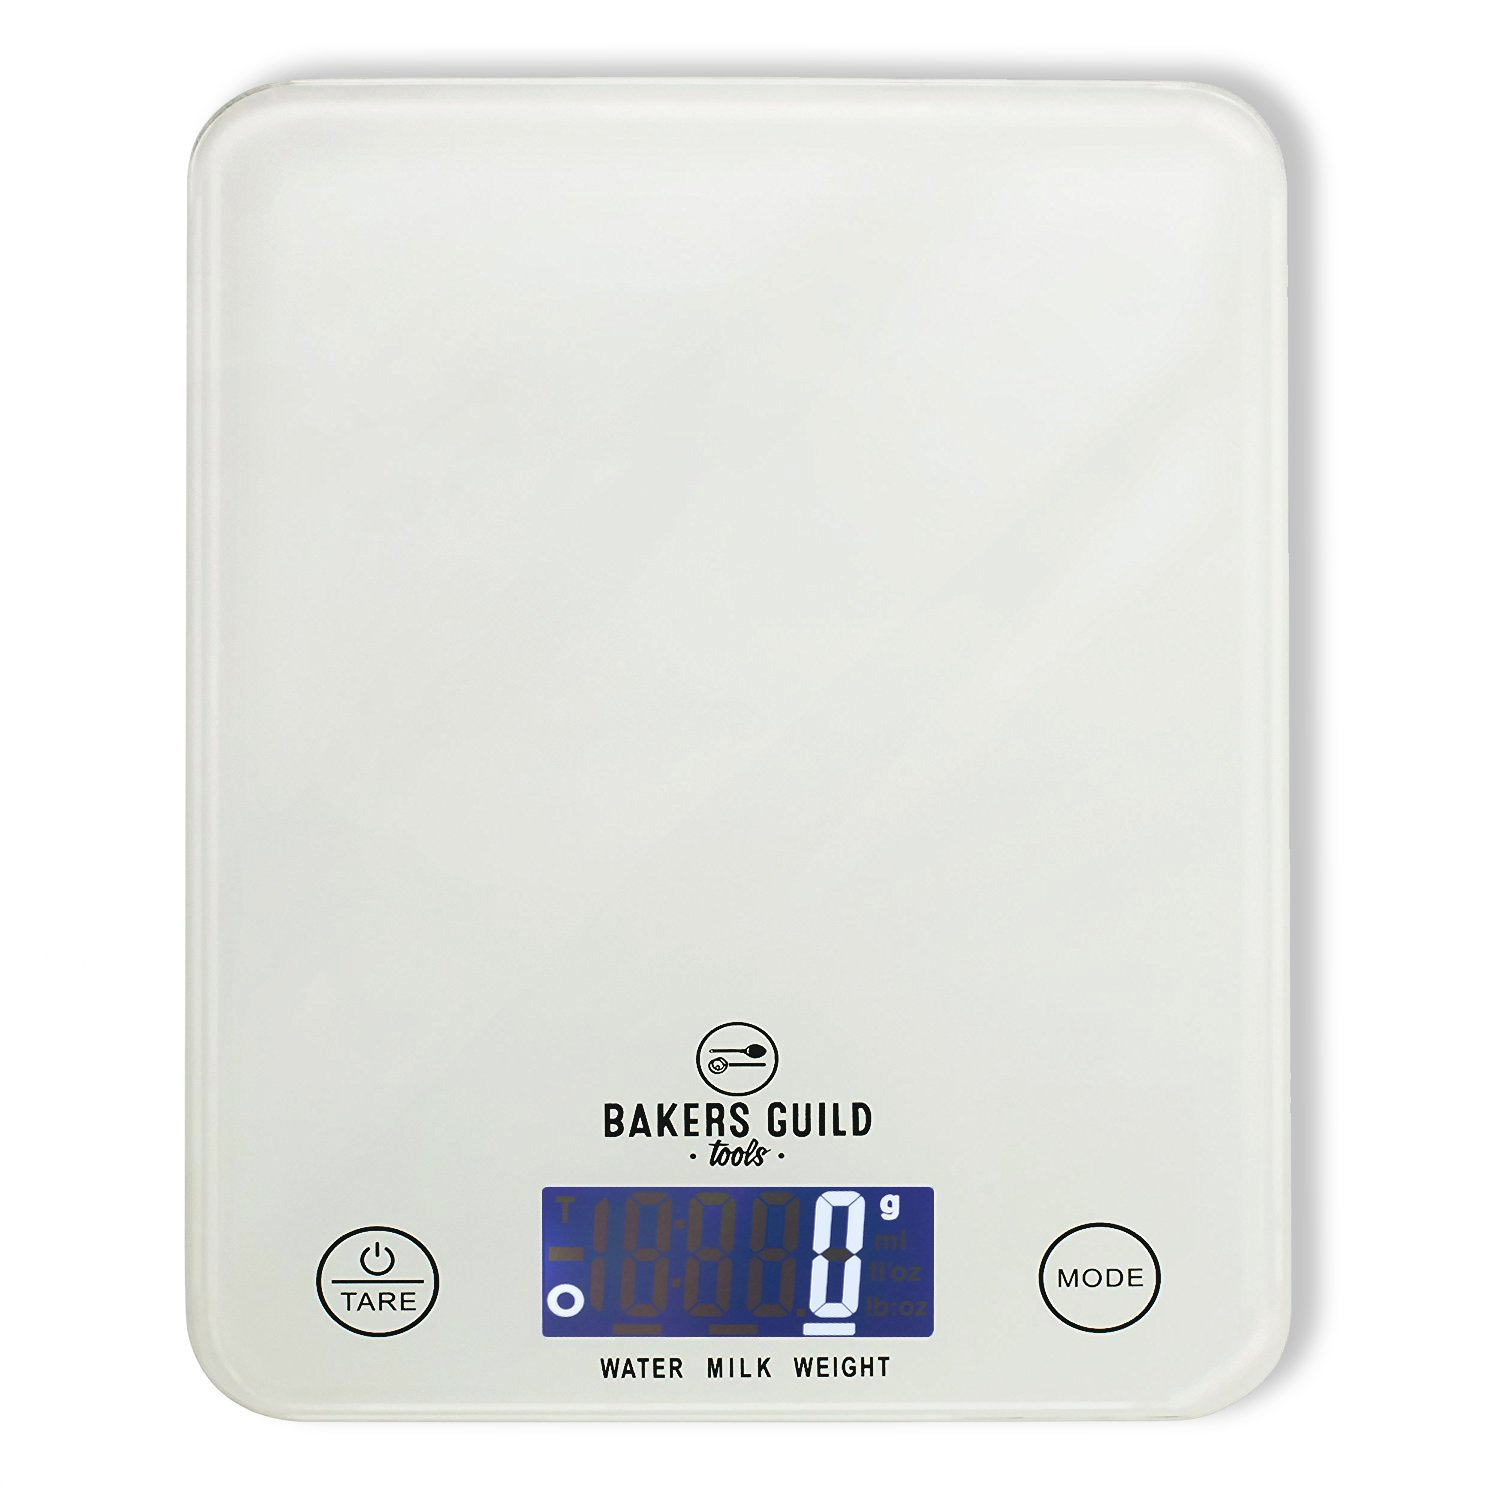 Digital Kitchen Food Scale (White), Fluid Ounces for Milk and Water, Weight in Grams, Ounces and Pounds (Batteries Included) – By Bakers Guild Tools